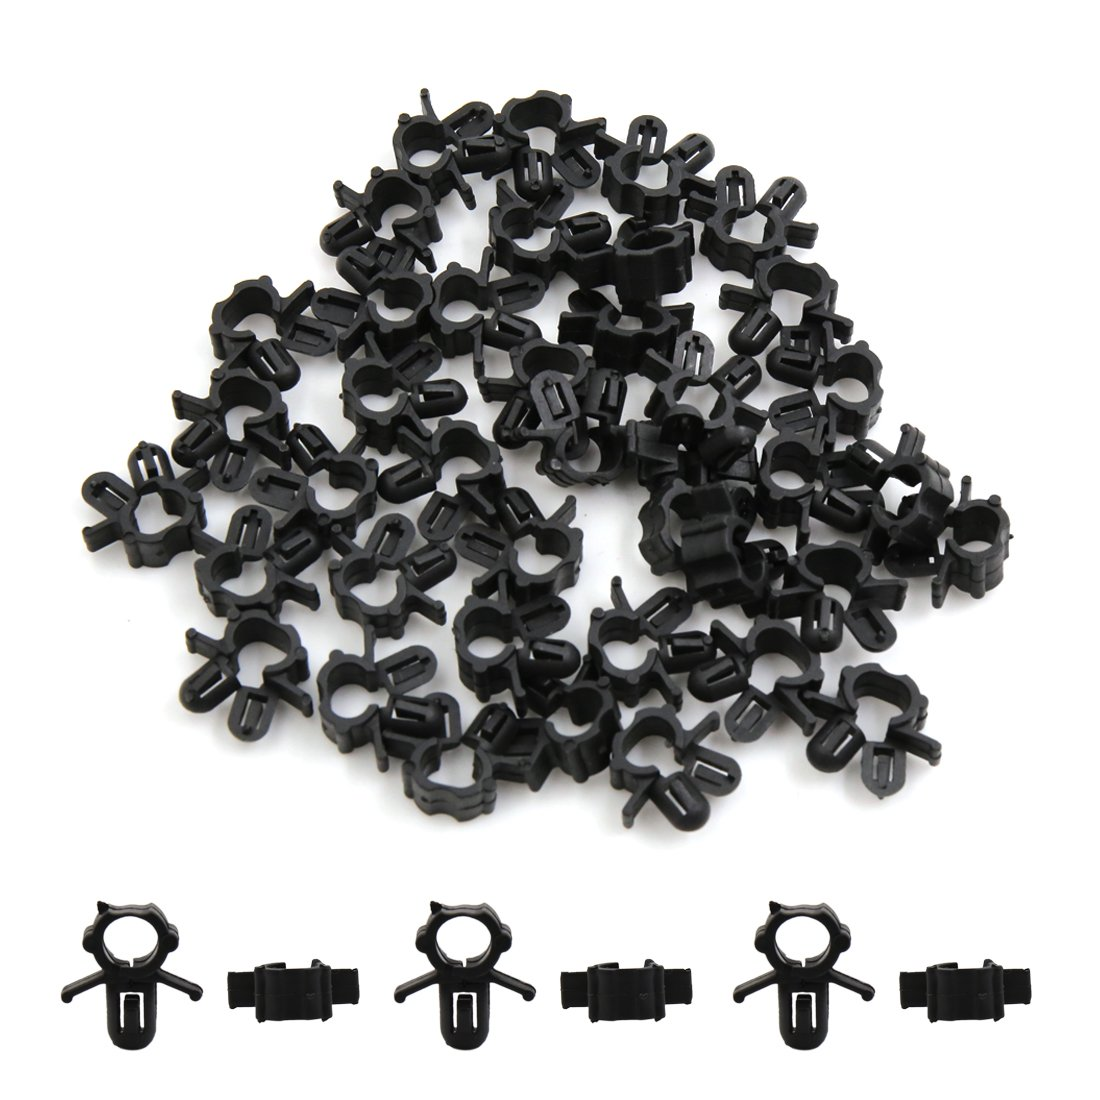 Amazon.com: uxcell 40Pcs Black Plastic Tube Clips Wiring Harness Clamp  Fastener Rivets 6.5mm: Automotive